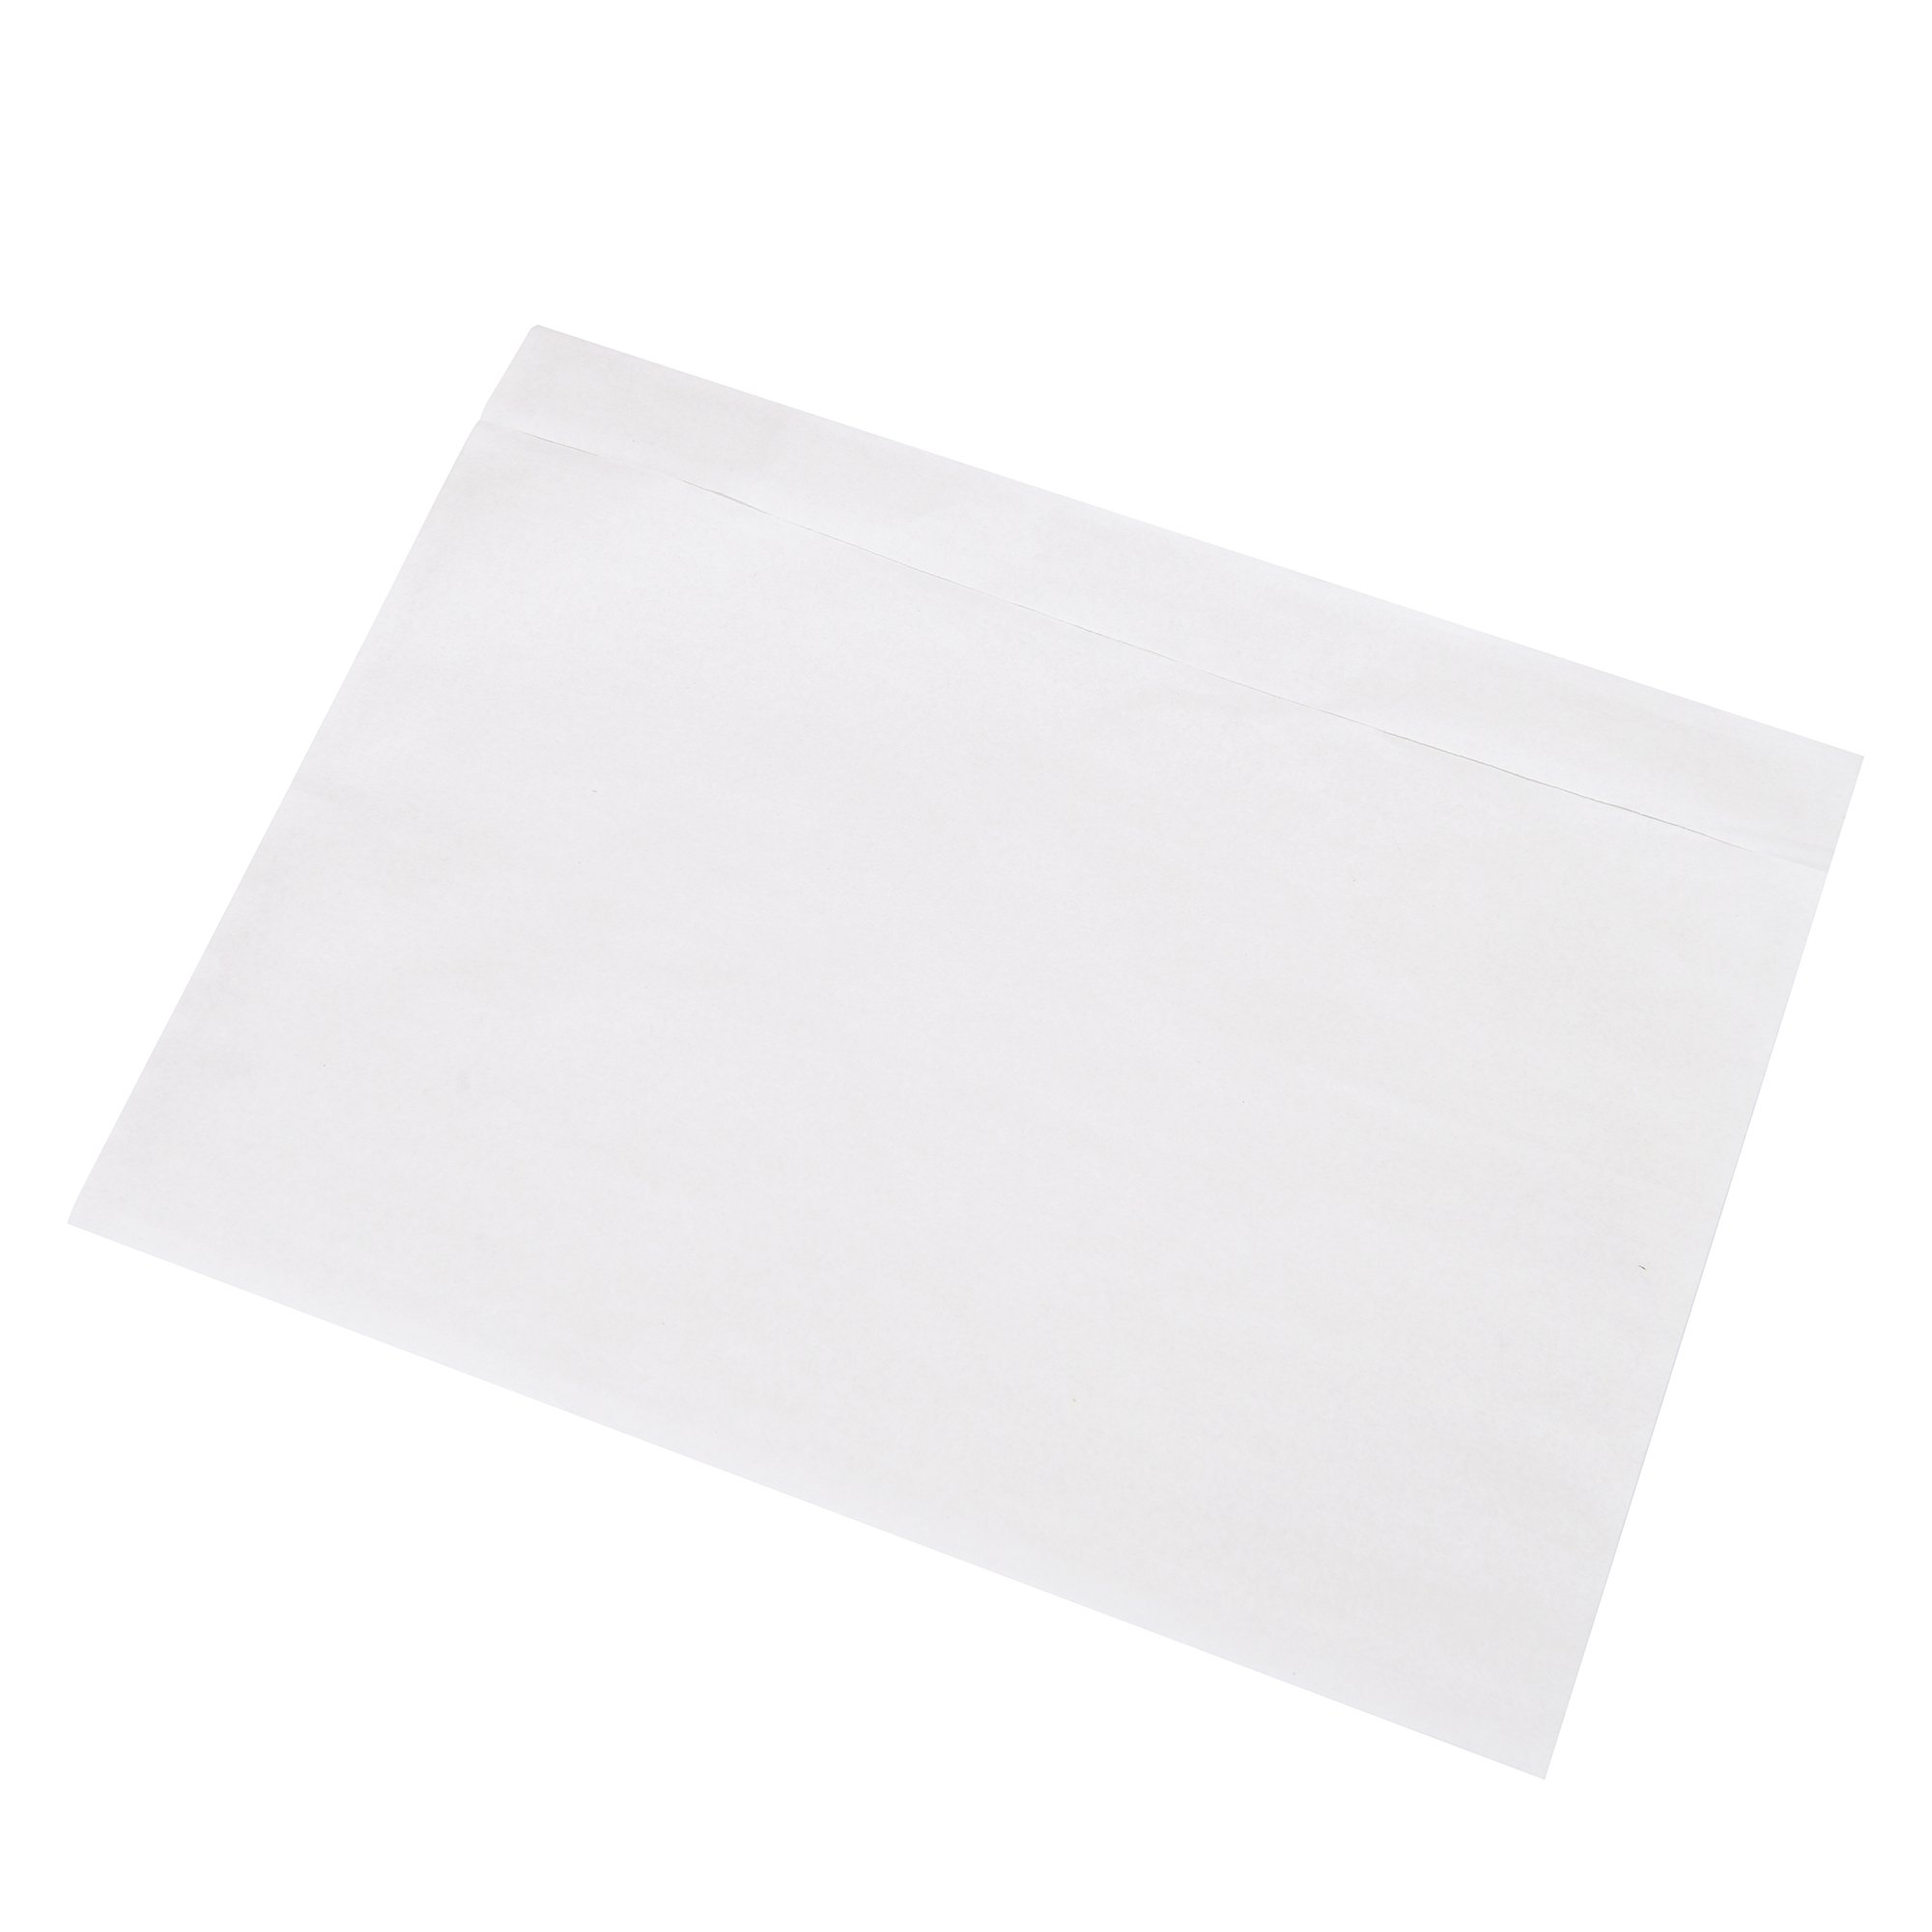 SJPACK 200 7.5'' x 5.5'' Clear Adhesive Top Loading Packing List / Label Envelopes Pouches by SJPACK (Image #2)